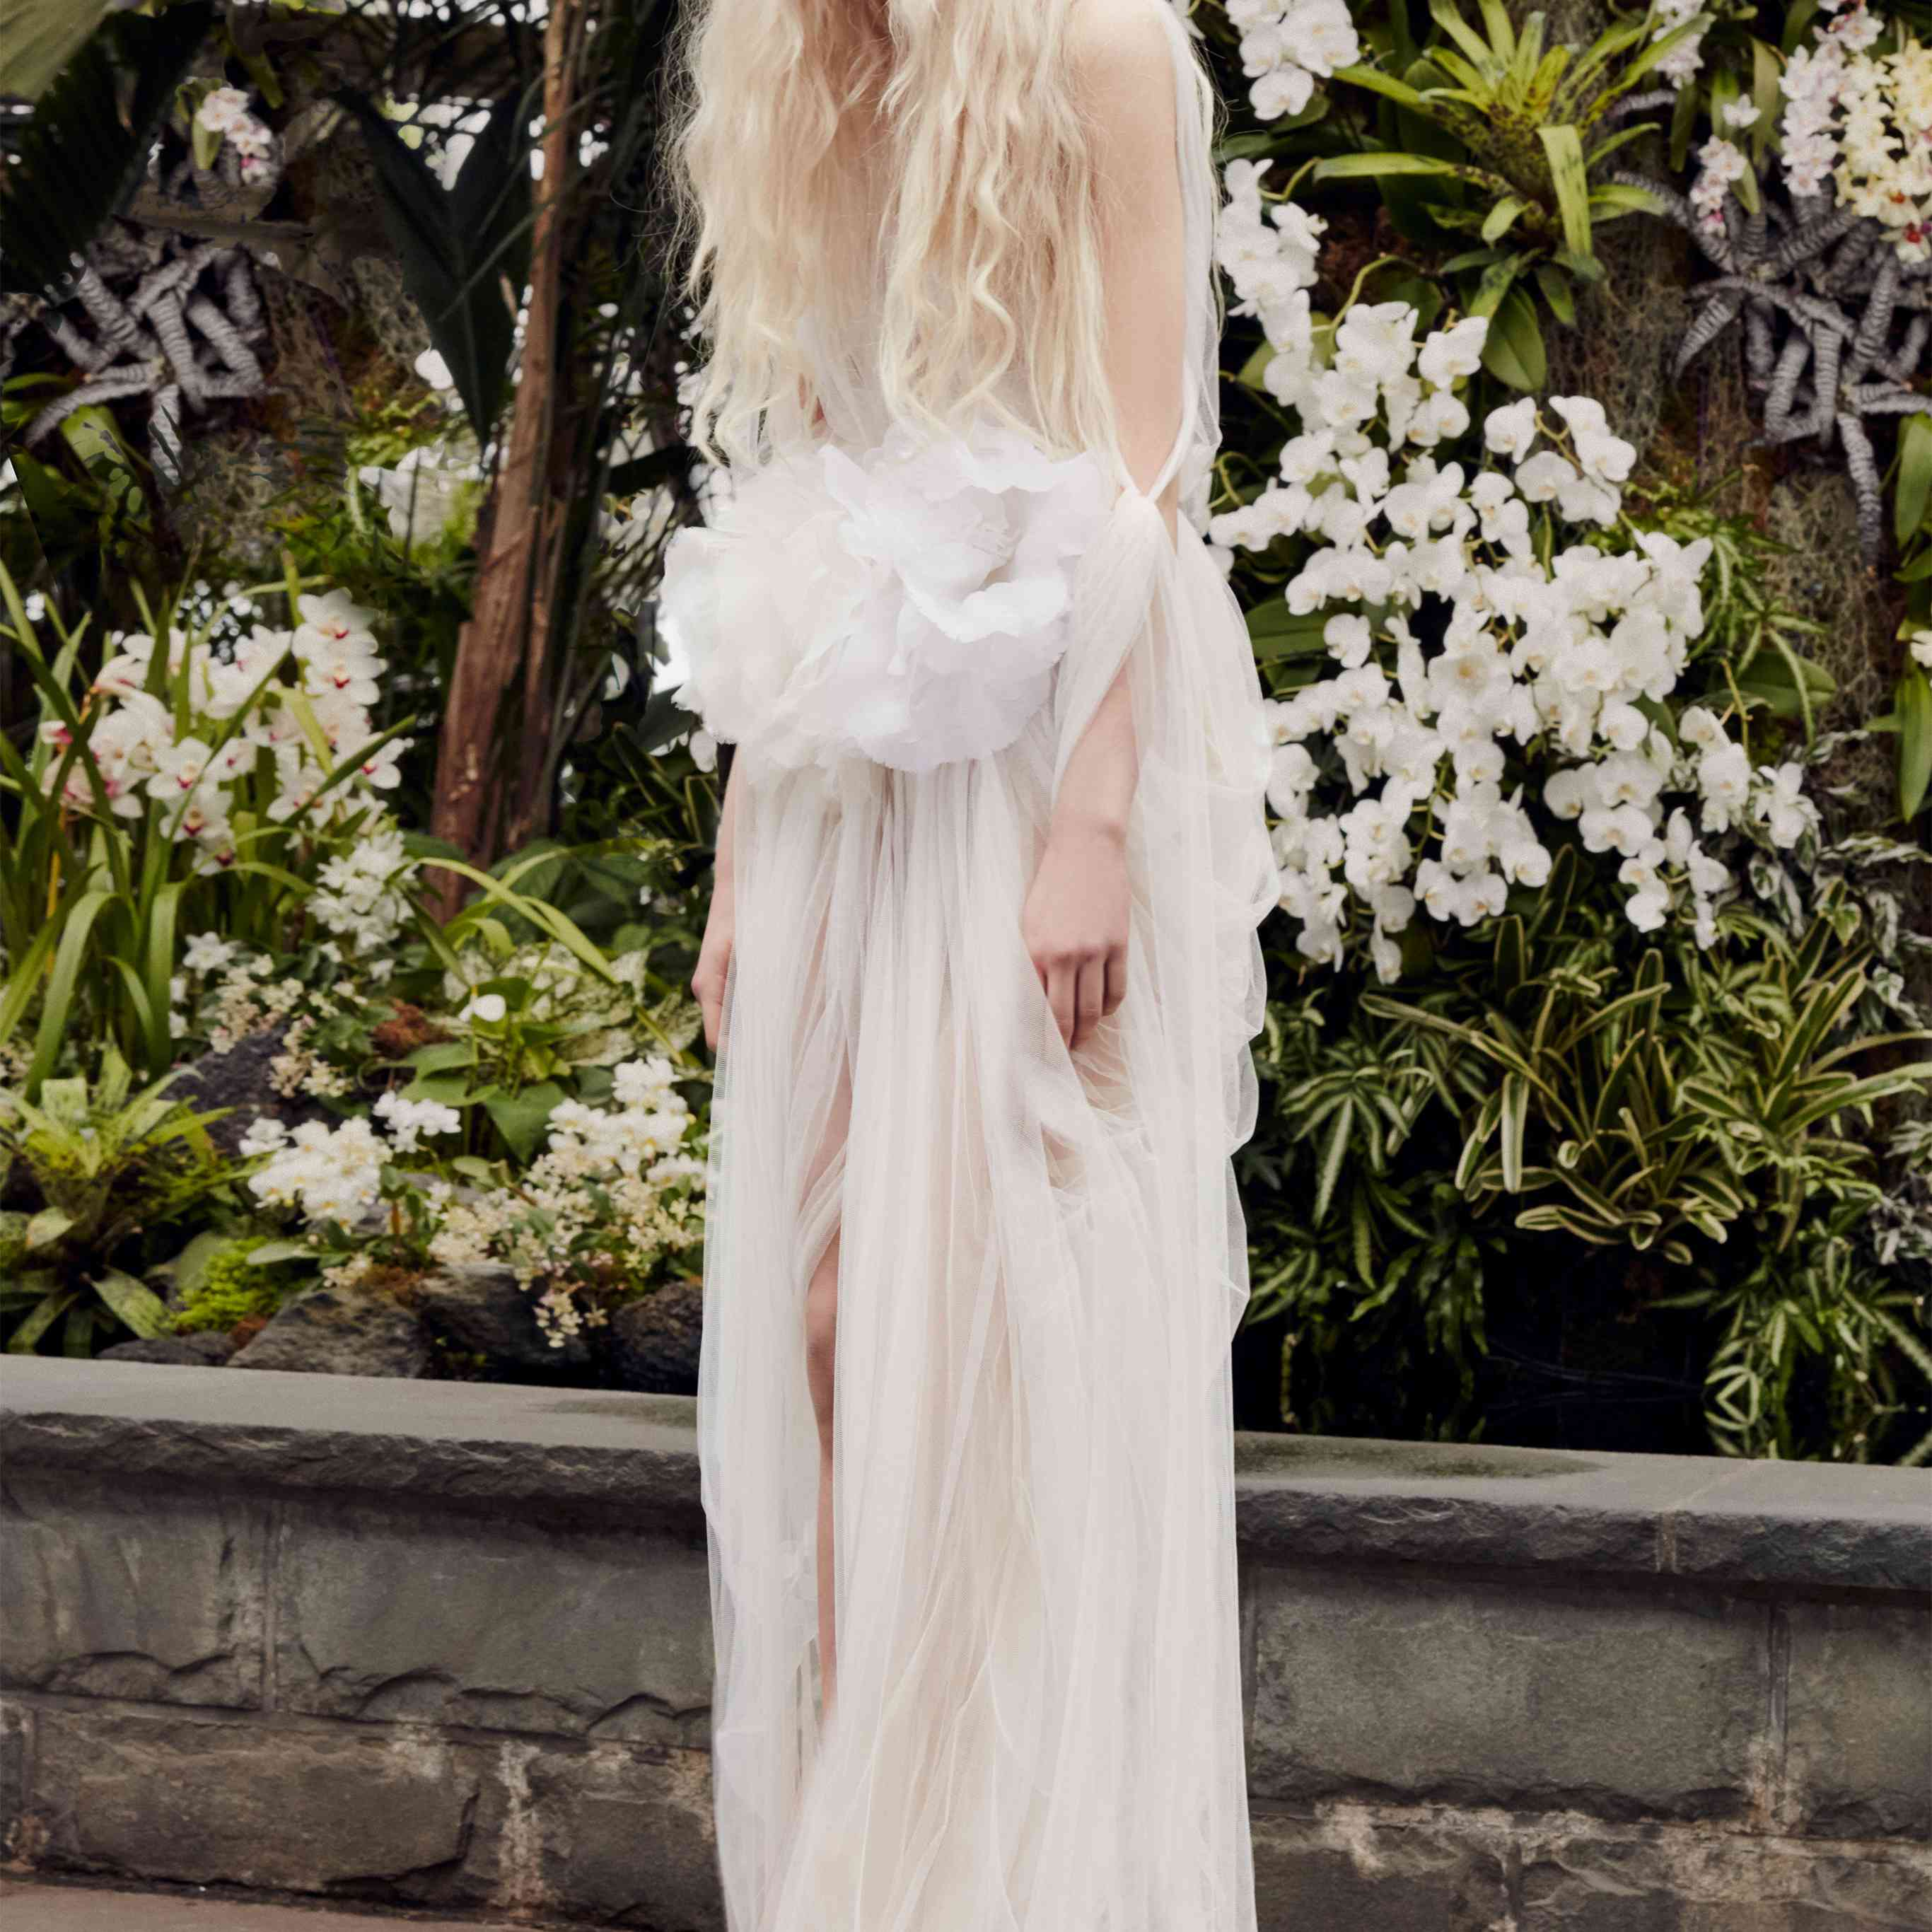 Model in a white wispy tulle gown with flower details at the waist